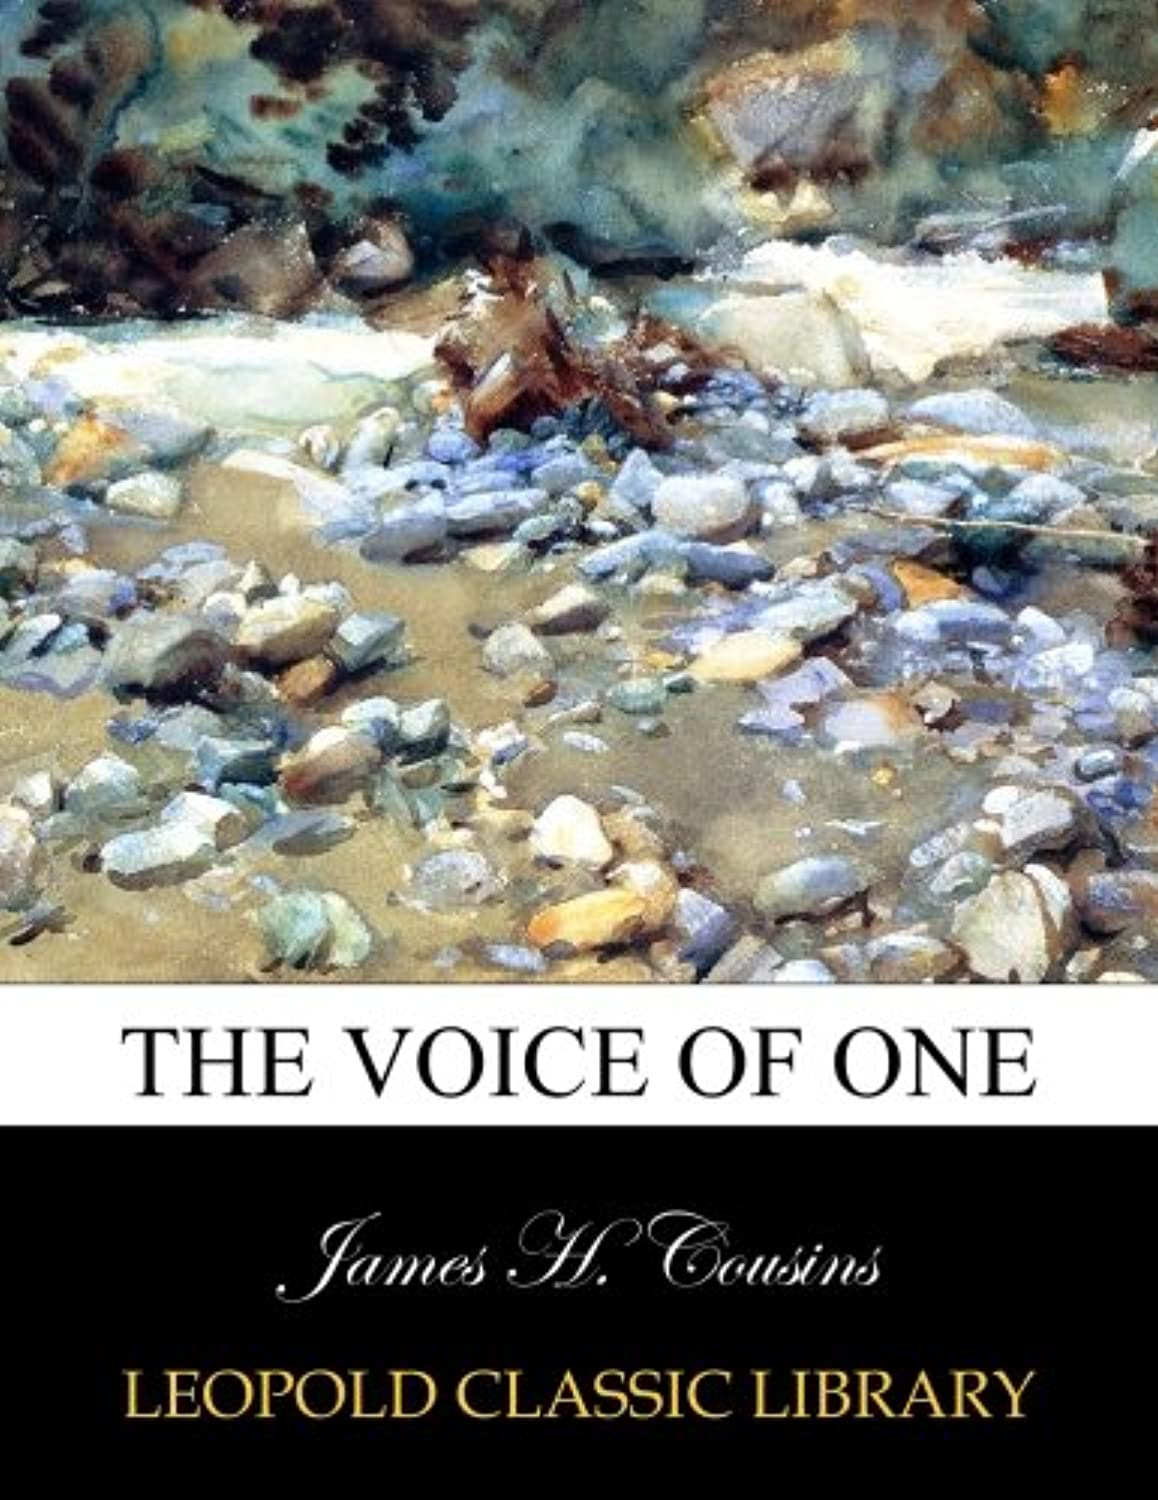 The Voice of One